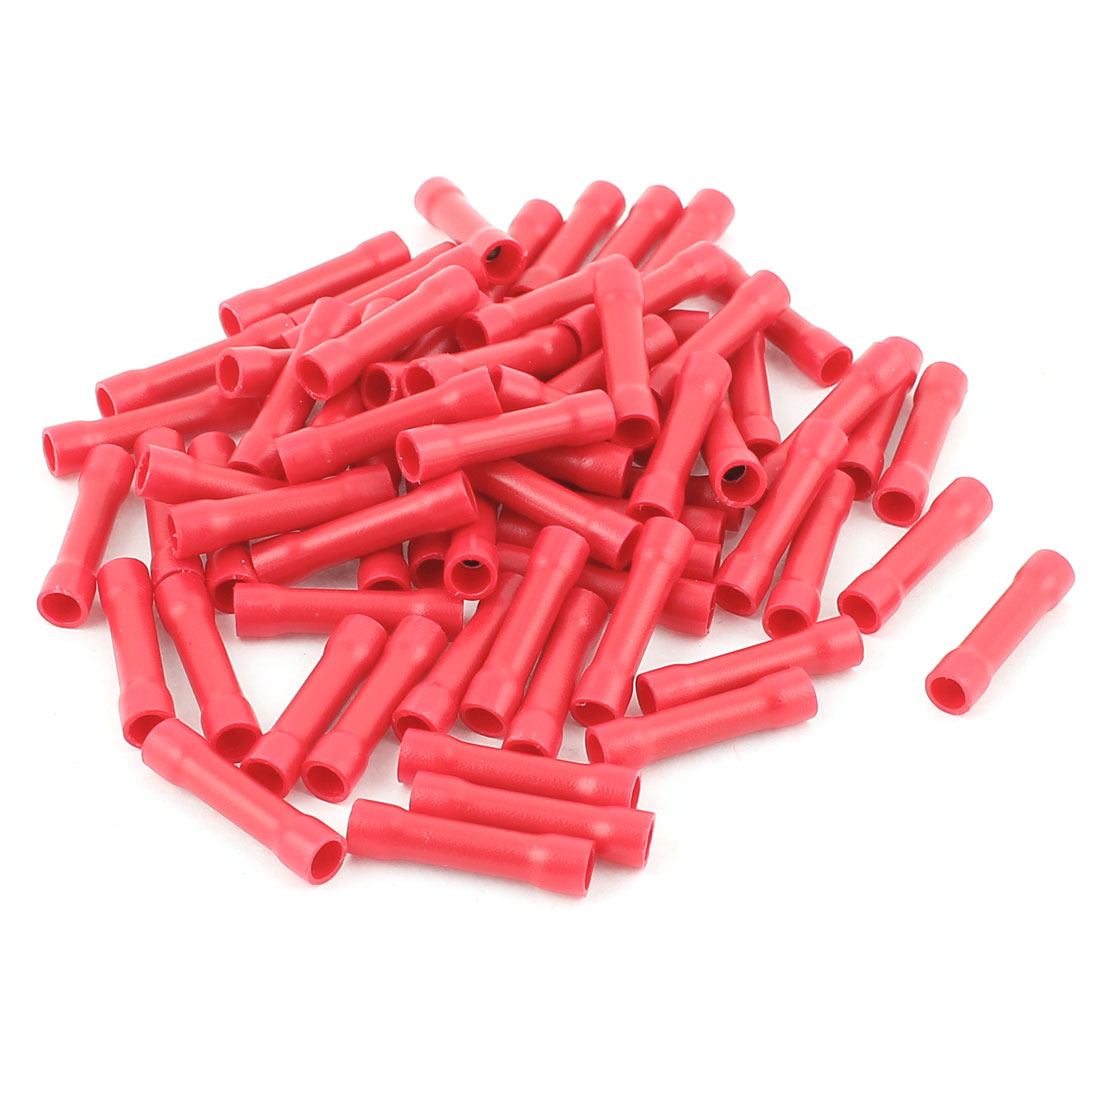 70 Pcs 4.3mm Dia 22-16AWG Dual Ends Red Plastic Fully Insulated Female Crimp Wire Connecting Terminal